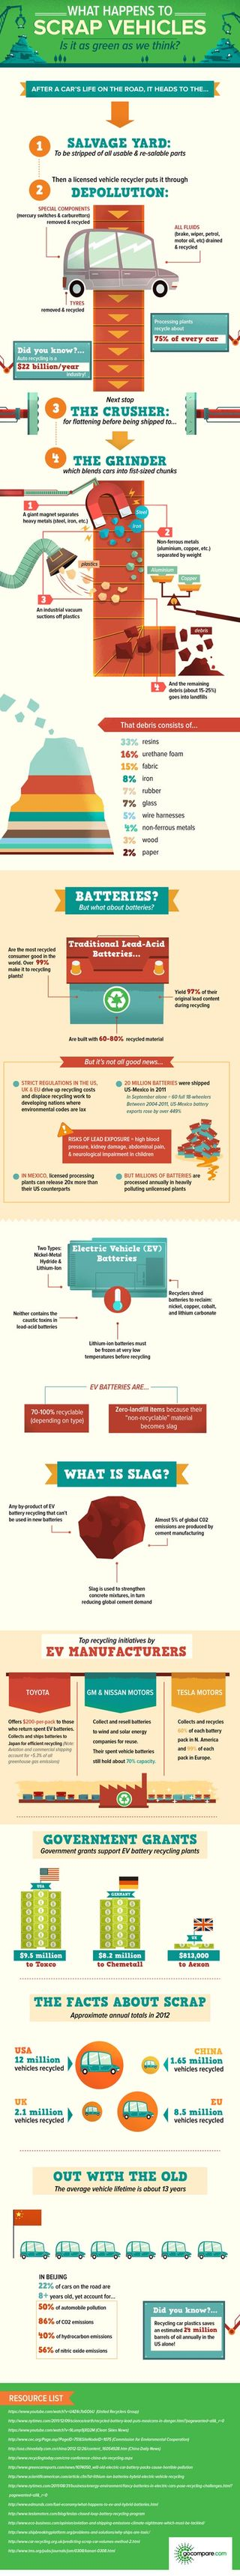 Vehicle recycling infographic